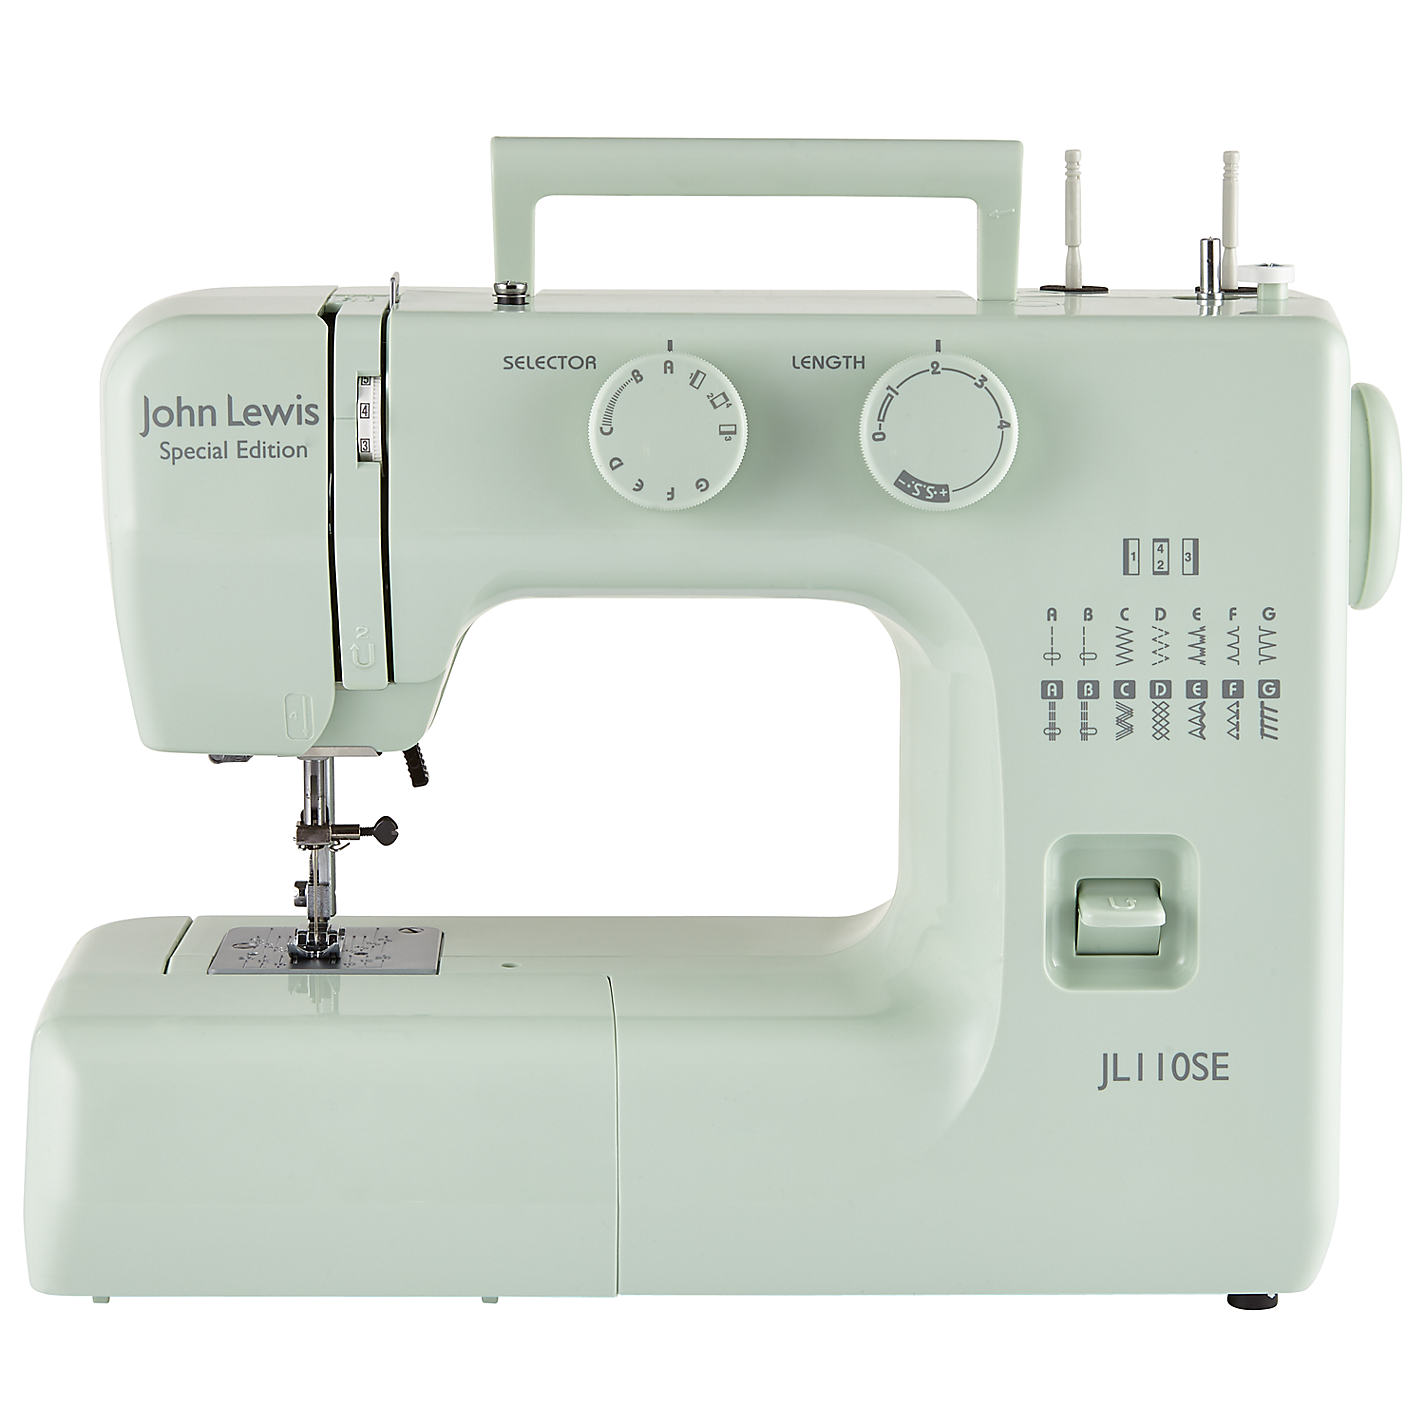 Singer Pixie Plus Sewing Machines Shop Brother Janome Amp Singer John Lewis